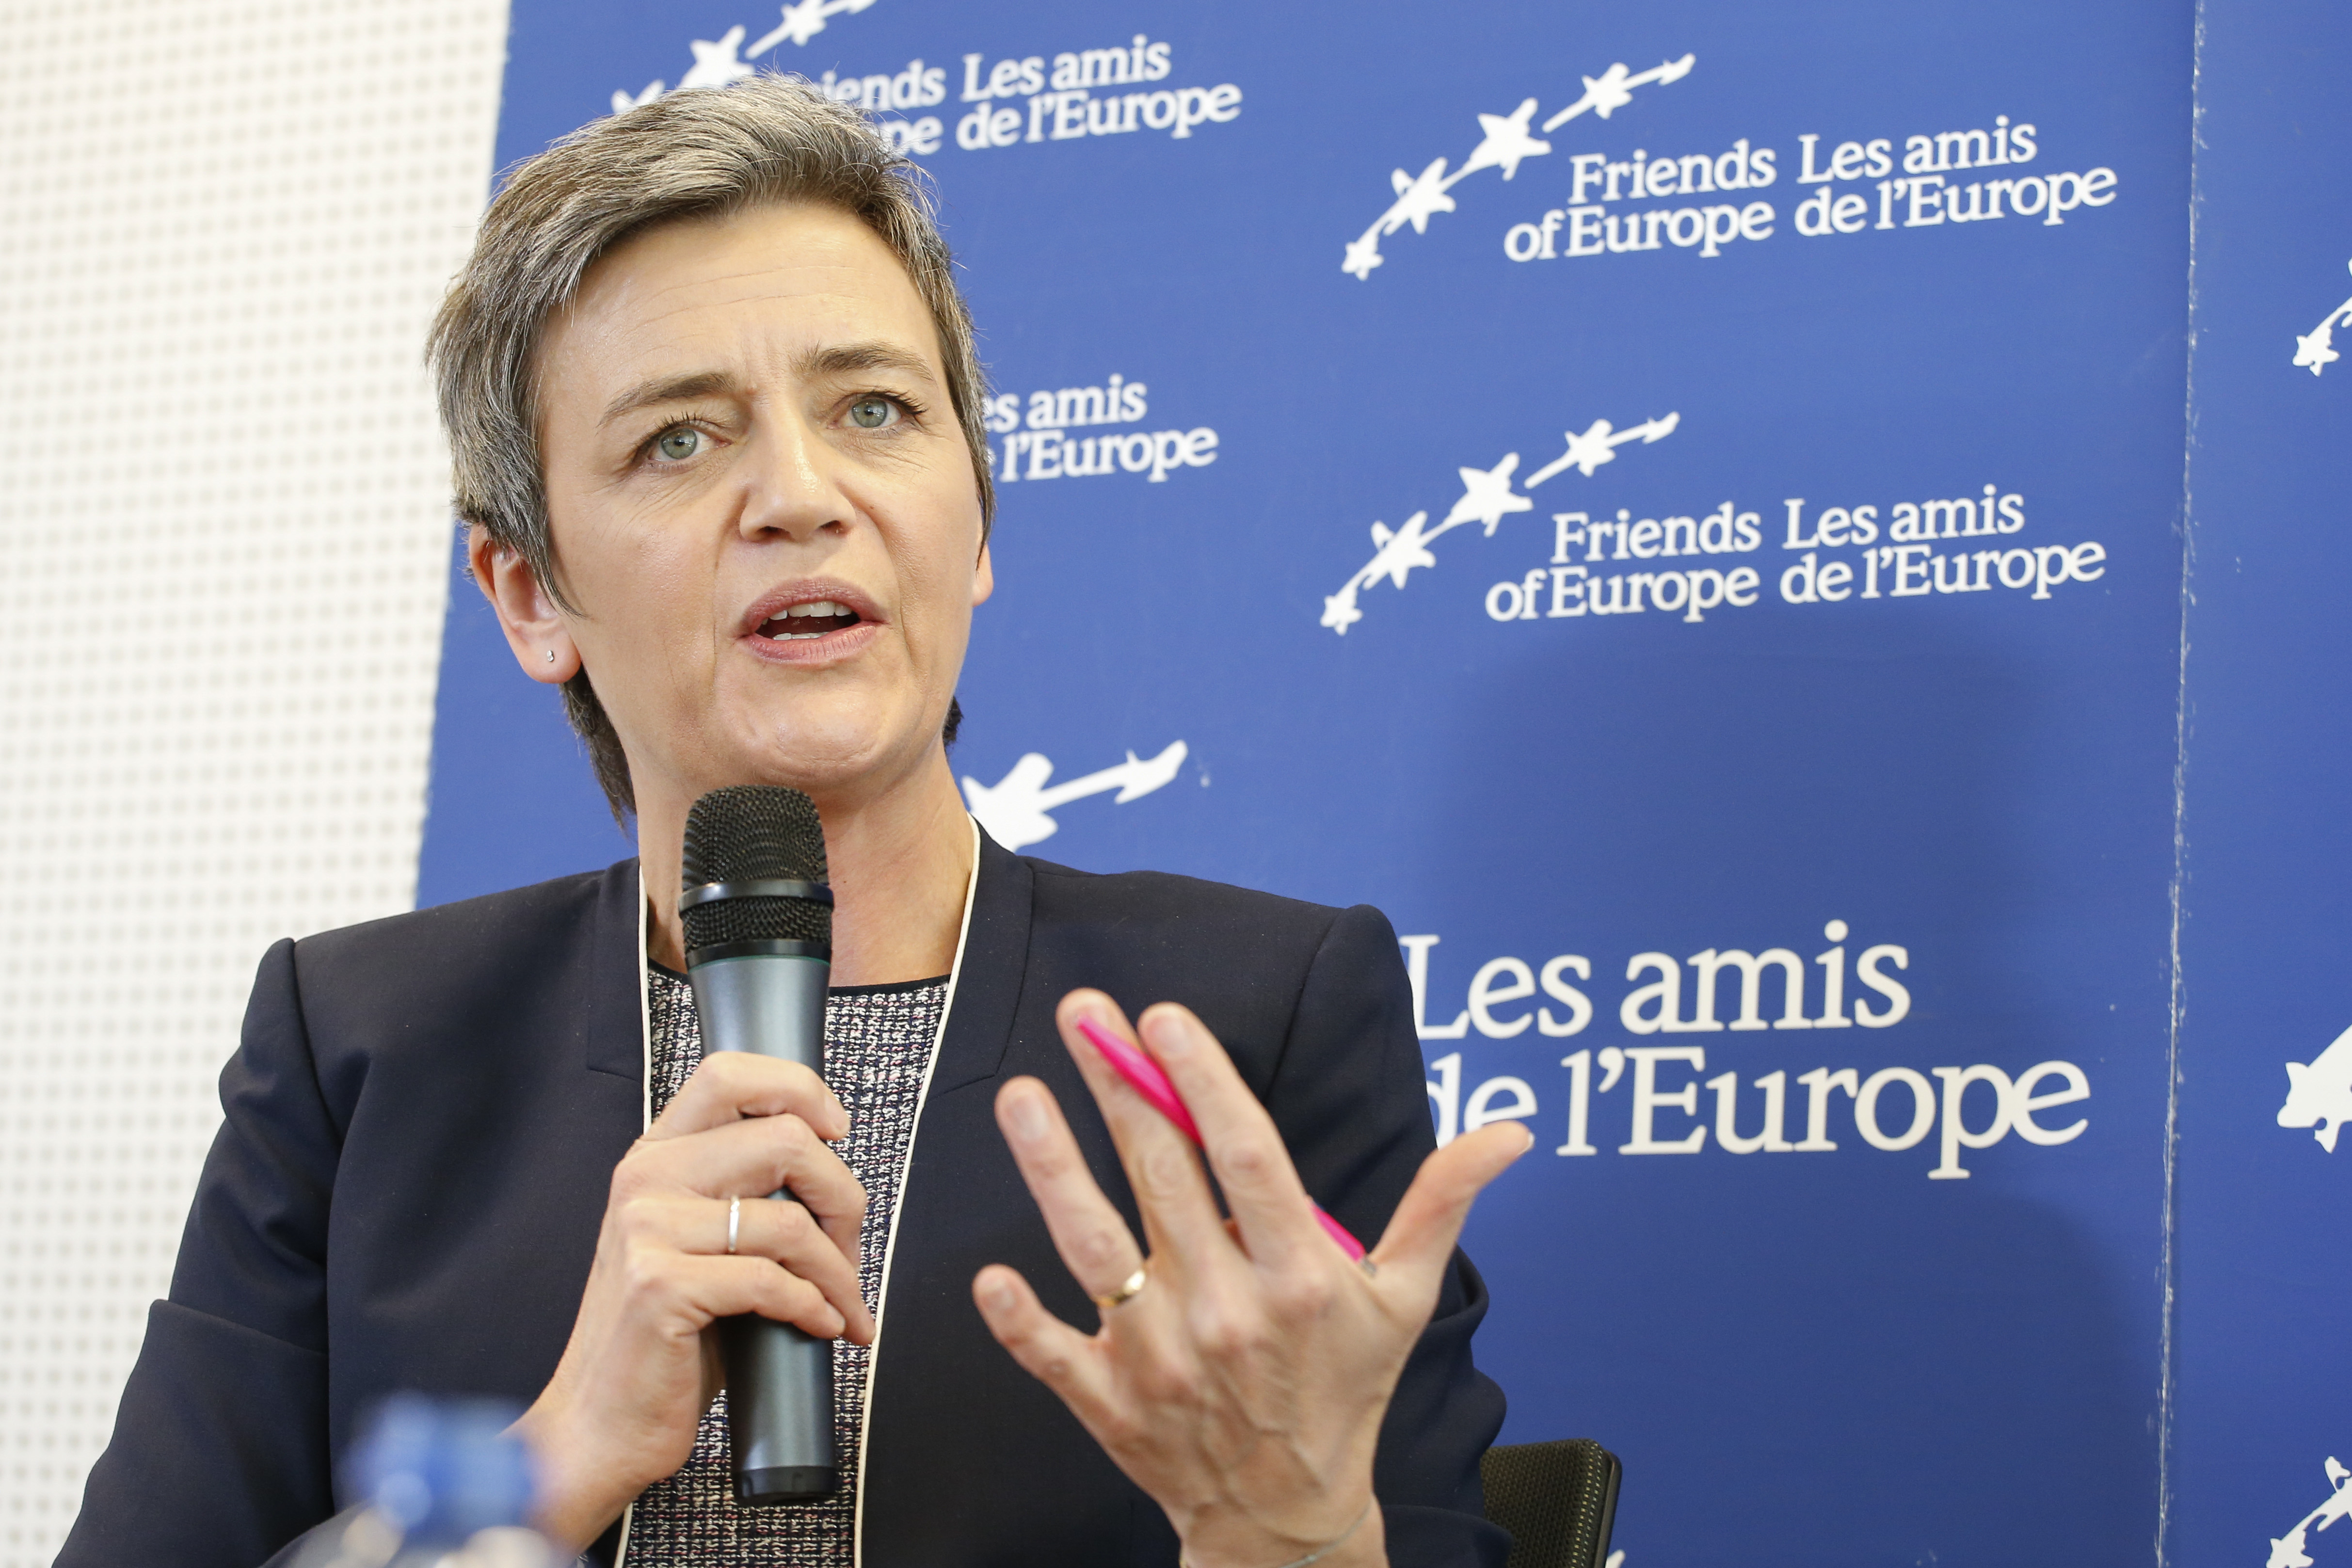 Margrethe Vestager is a Danish politician, who is currently serving as the European Commissioner for Competition.  She was responsible for the commission that fined Google. Image: Flickr